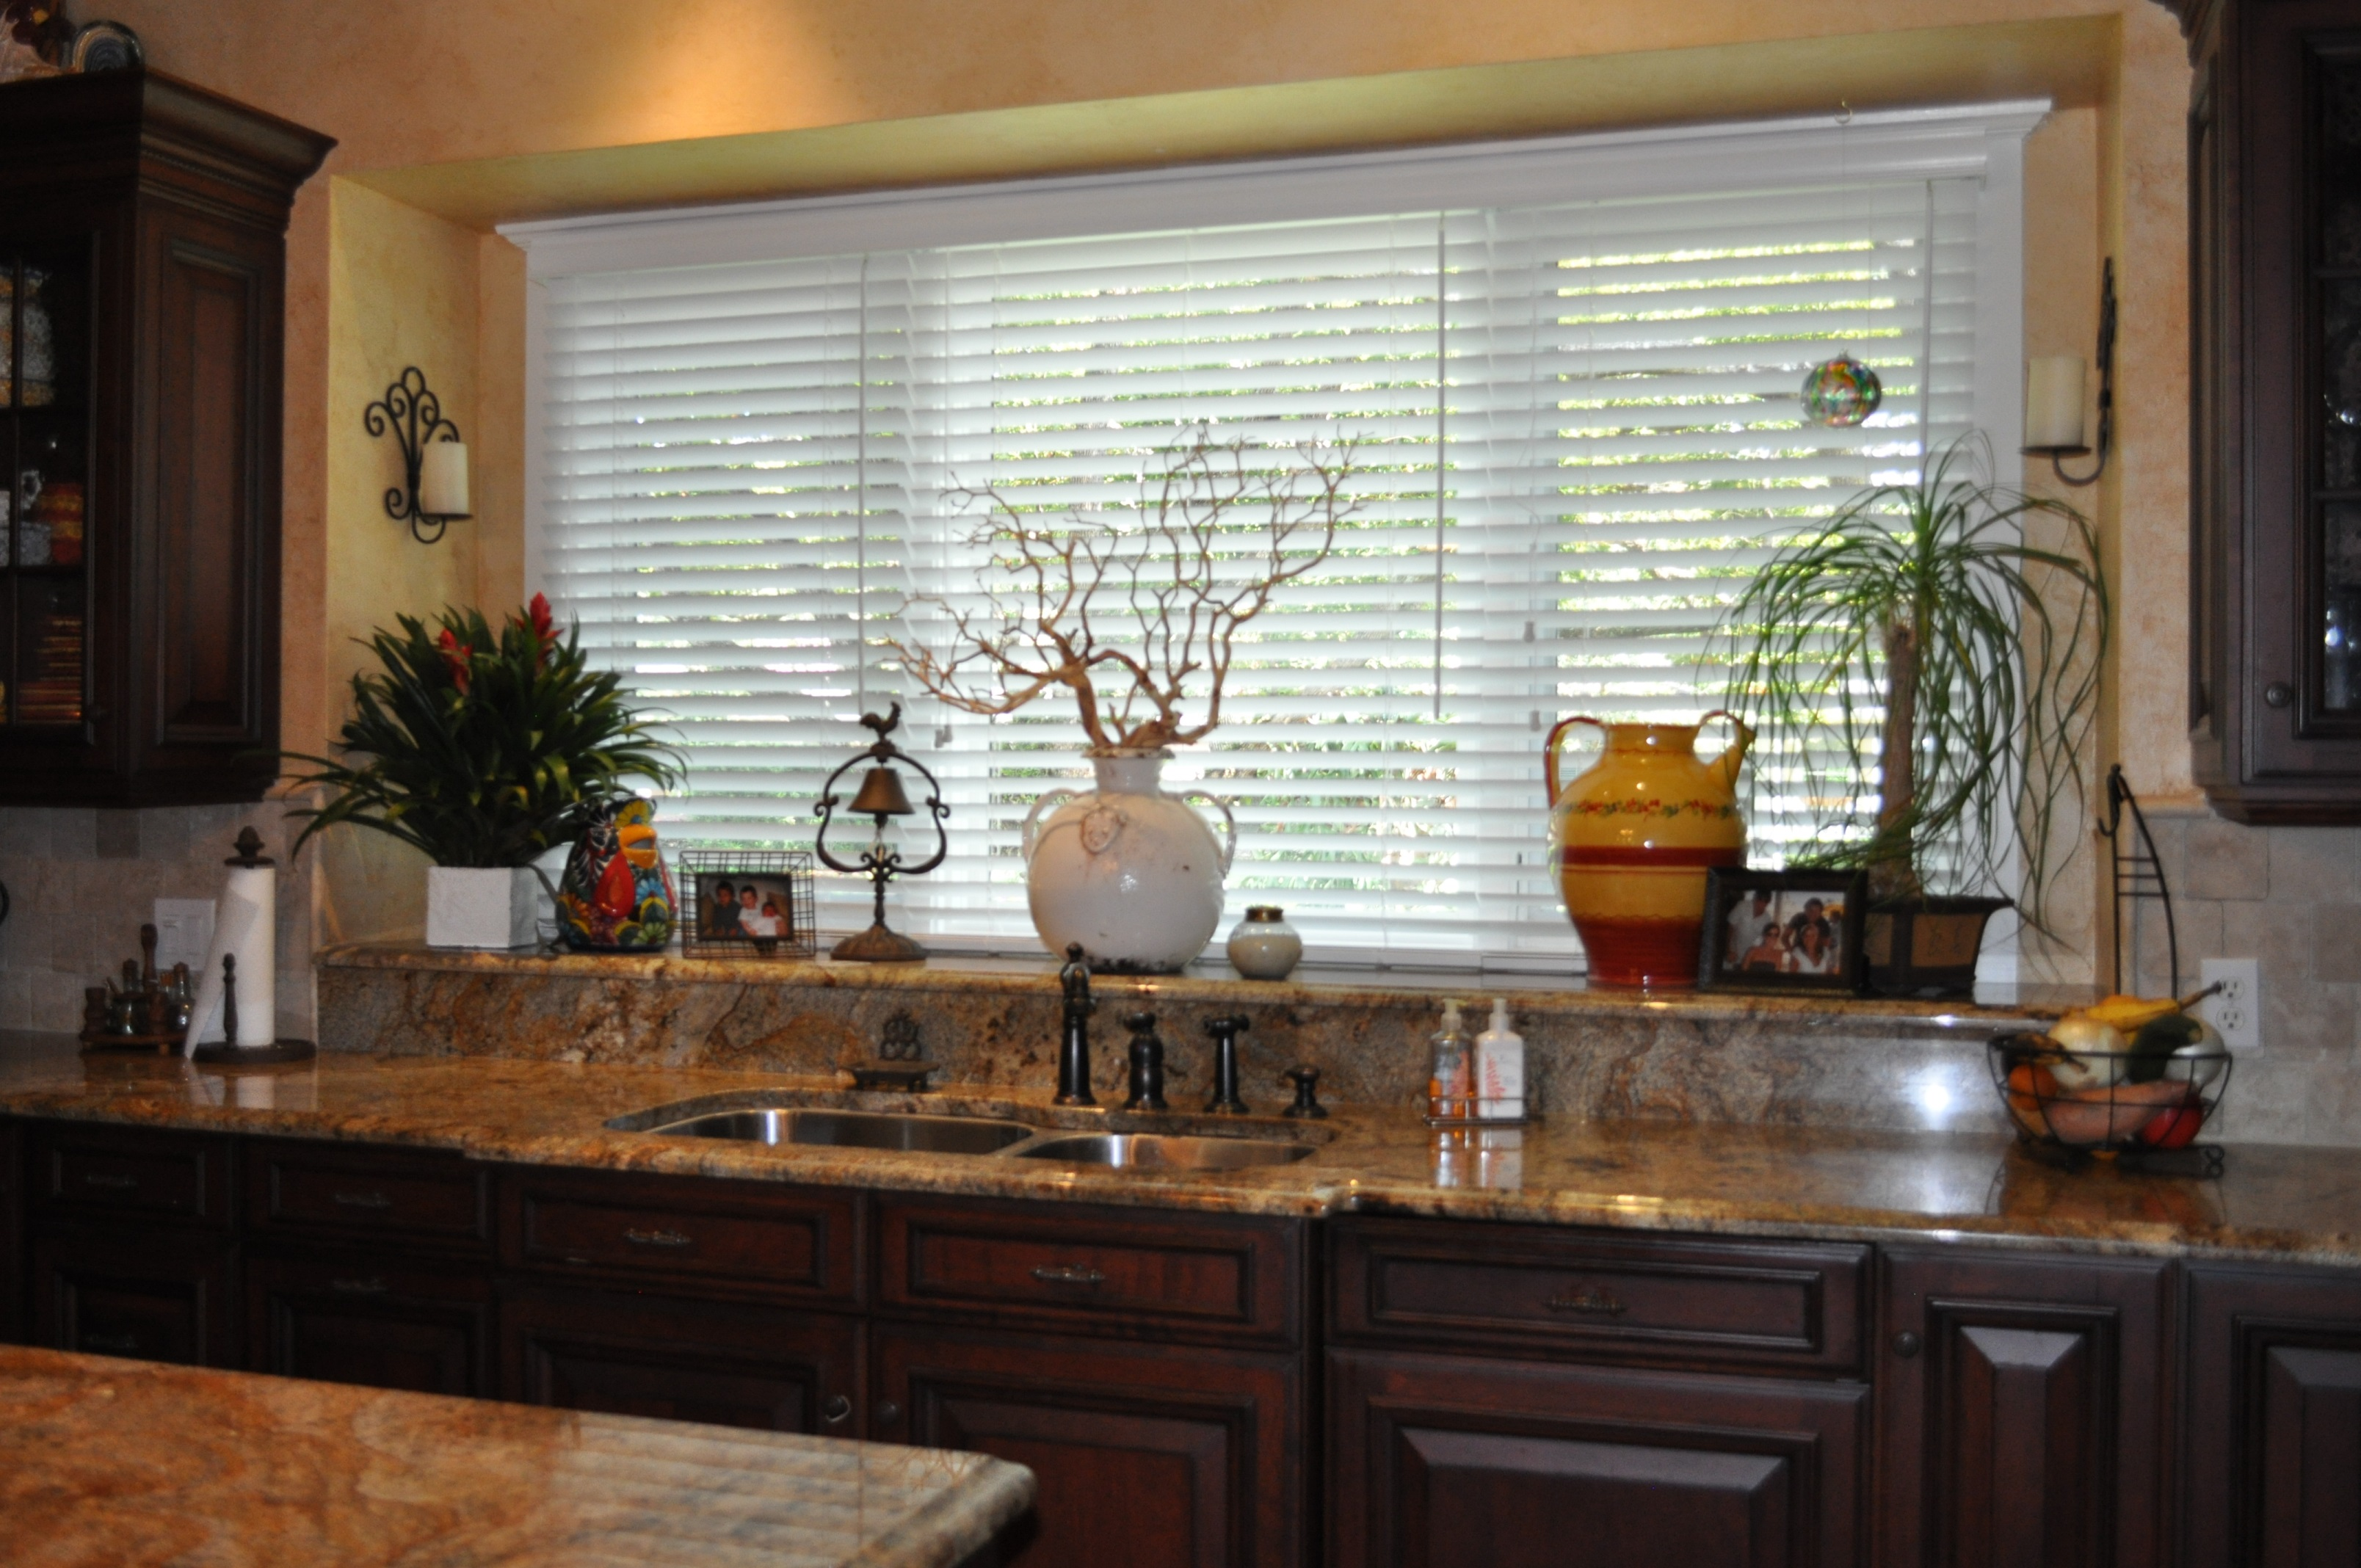 plantation shutters Belle Isle, window blinds, roller shades